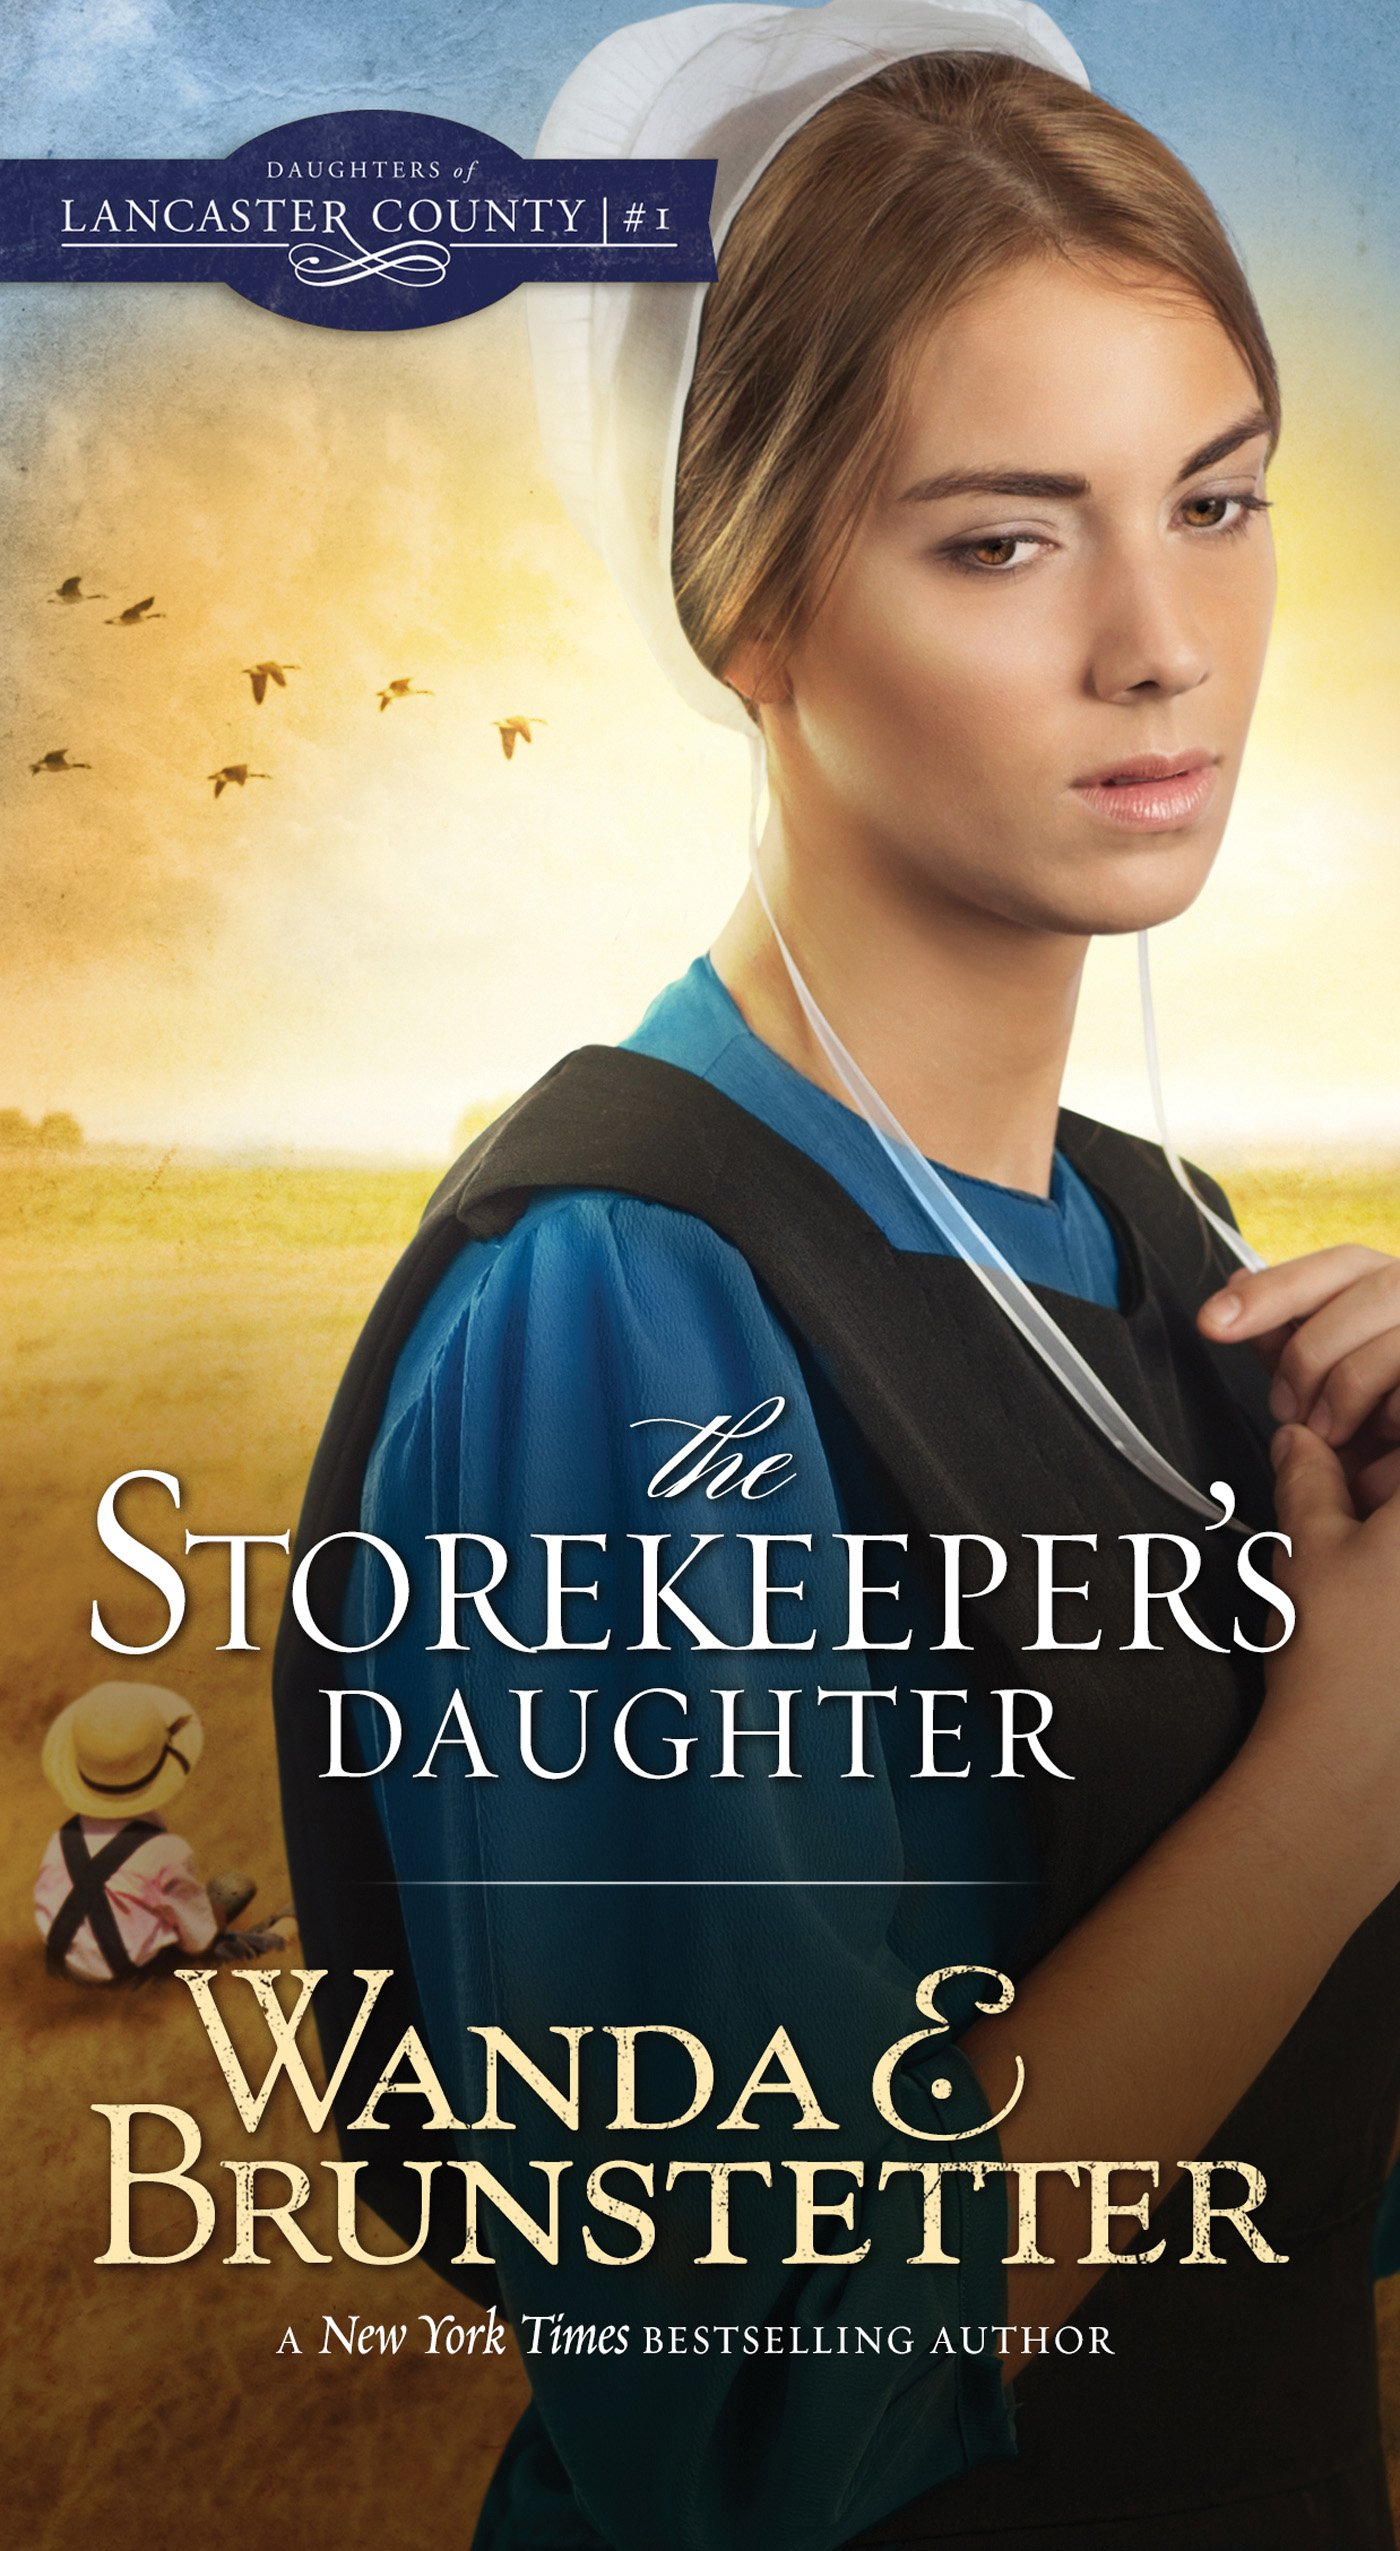 The Storekeeper's Daughter (Daughters of Lancaster County): Wanda E.  Brunstetter: 9781630588854: Amazon.com: Books